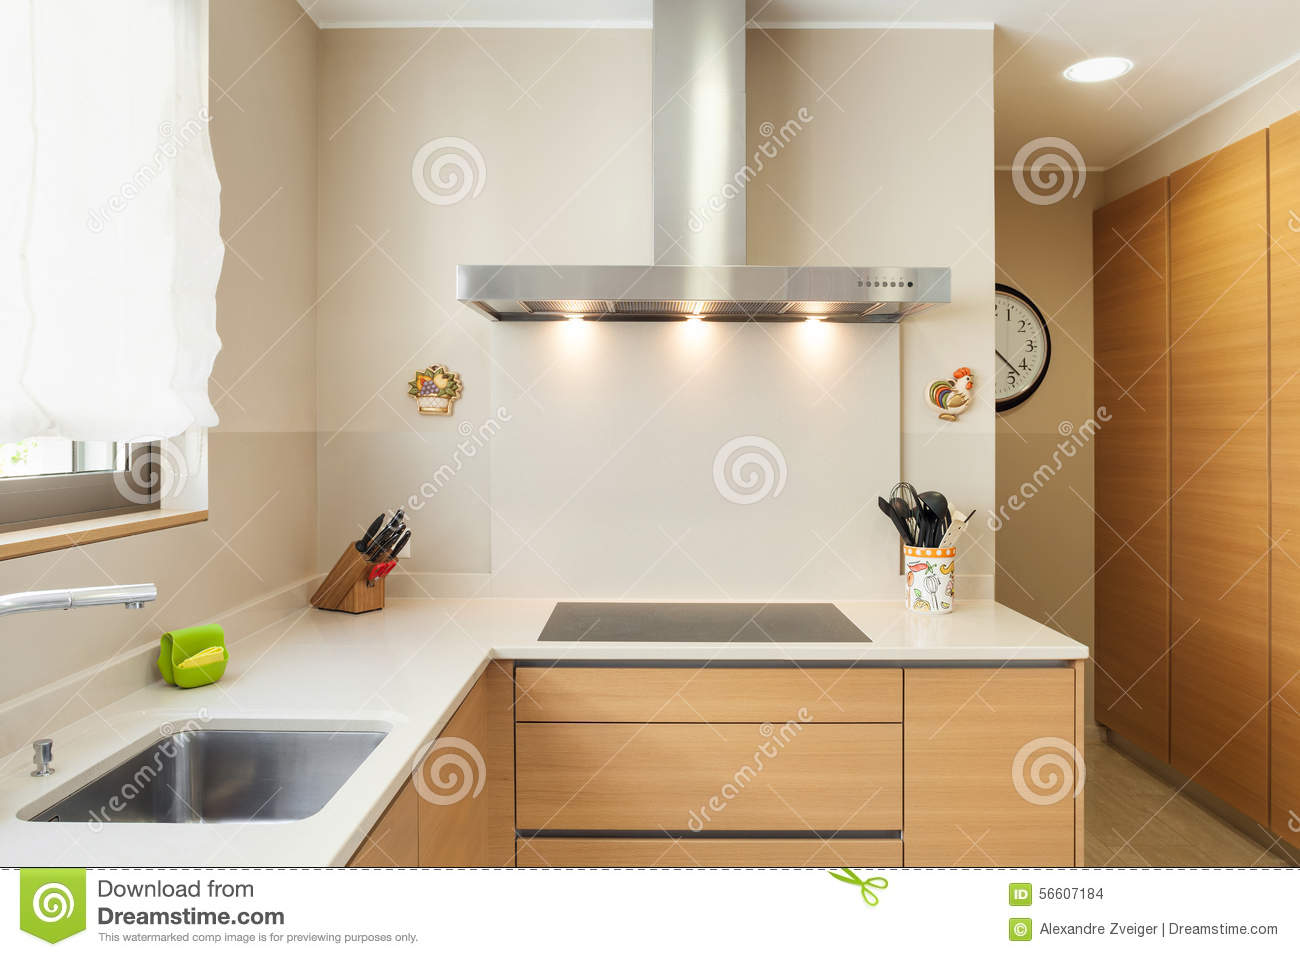 Appartement Meublé, Cuisine Moderne Photo stock - Image du ...